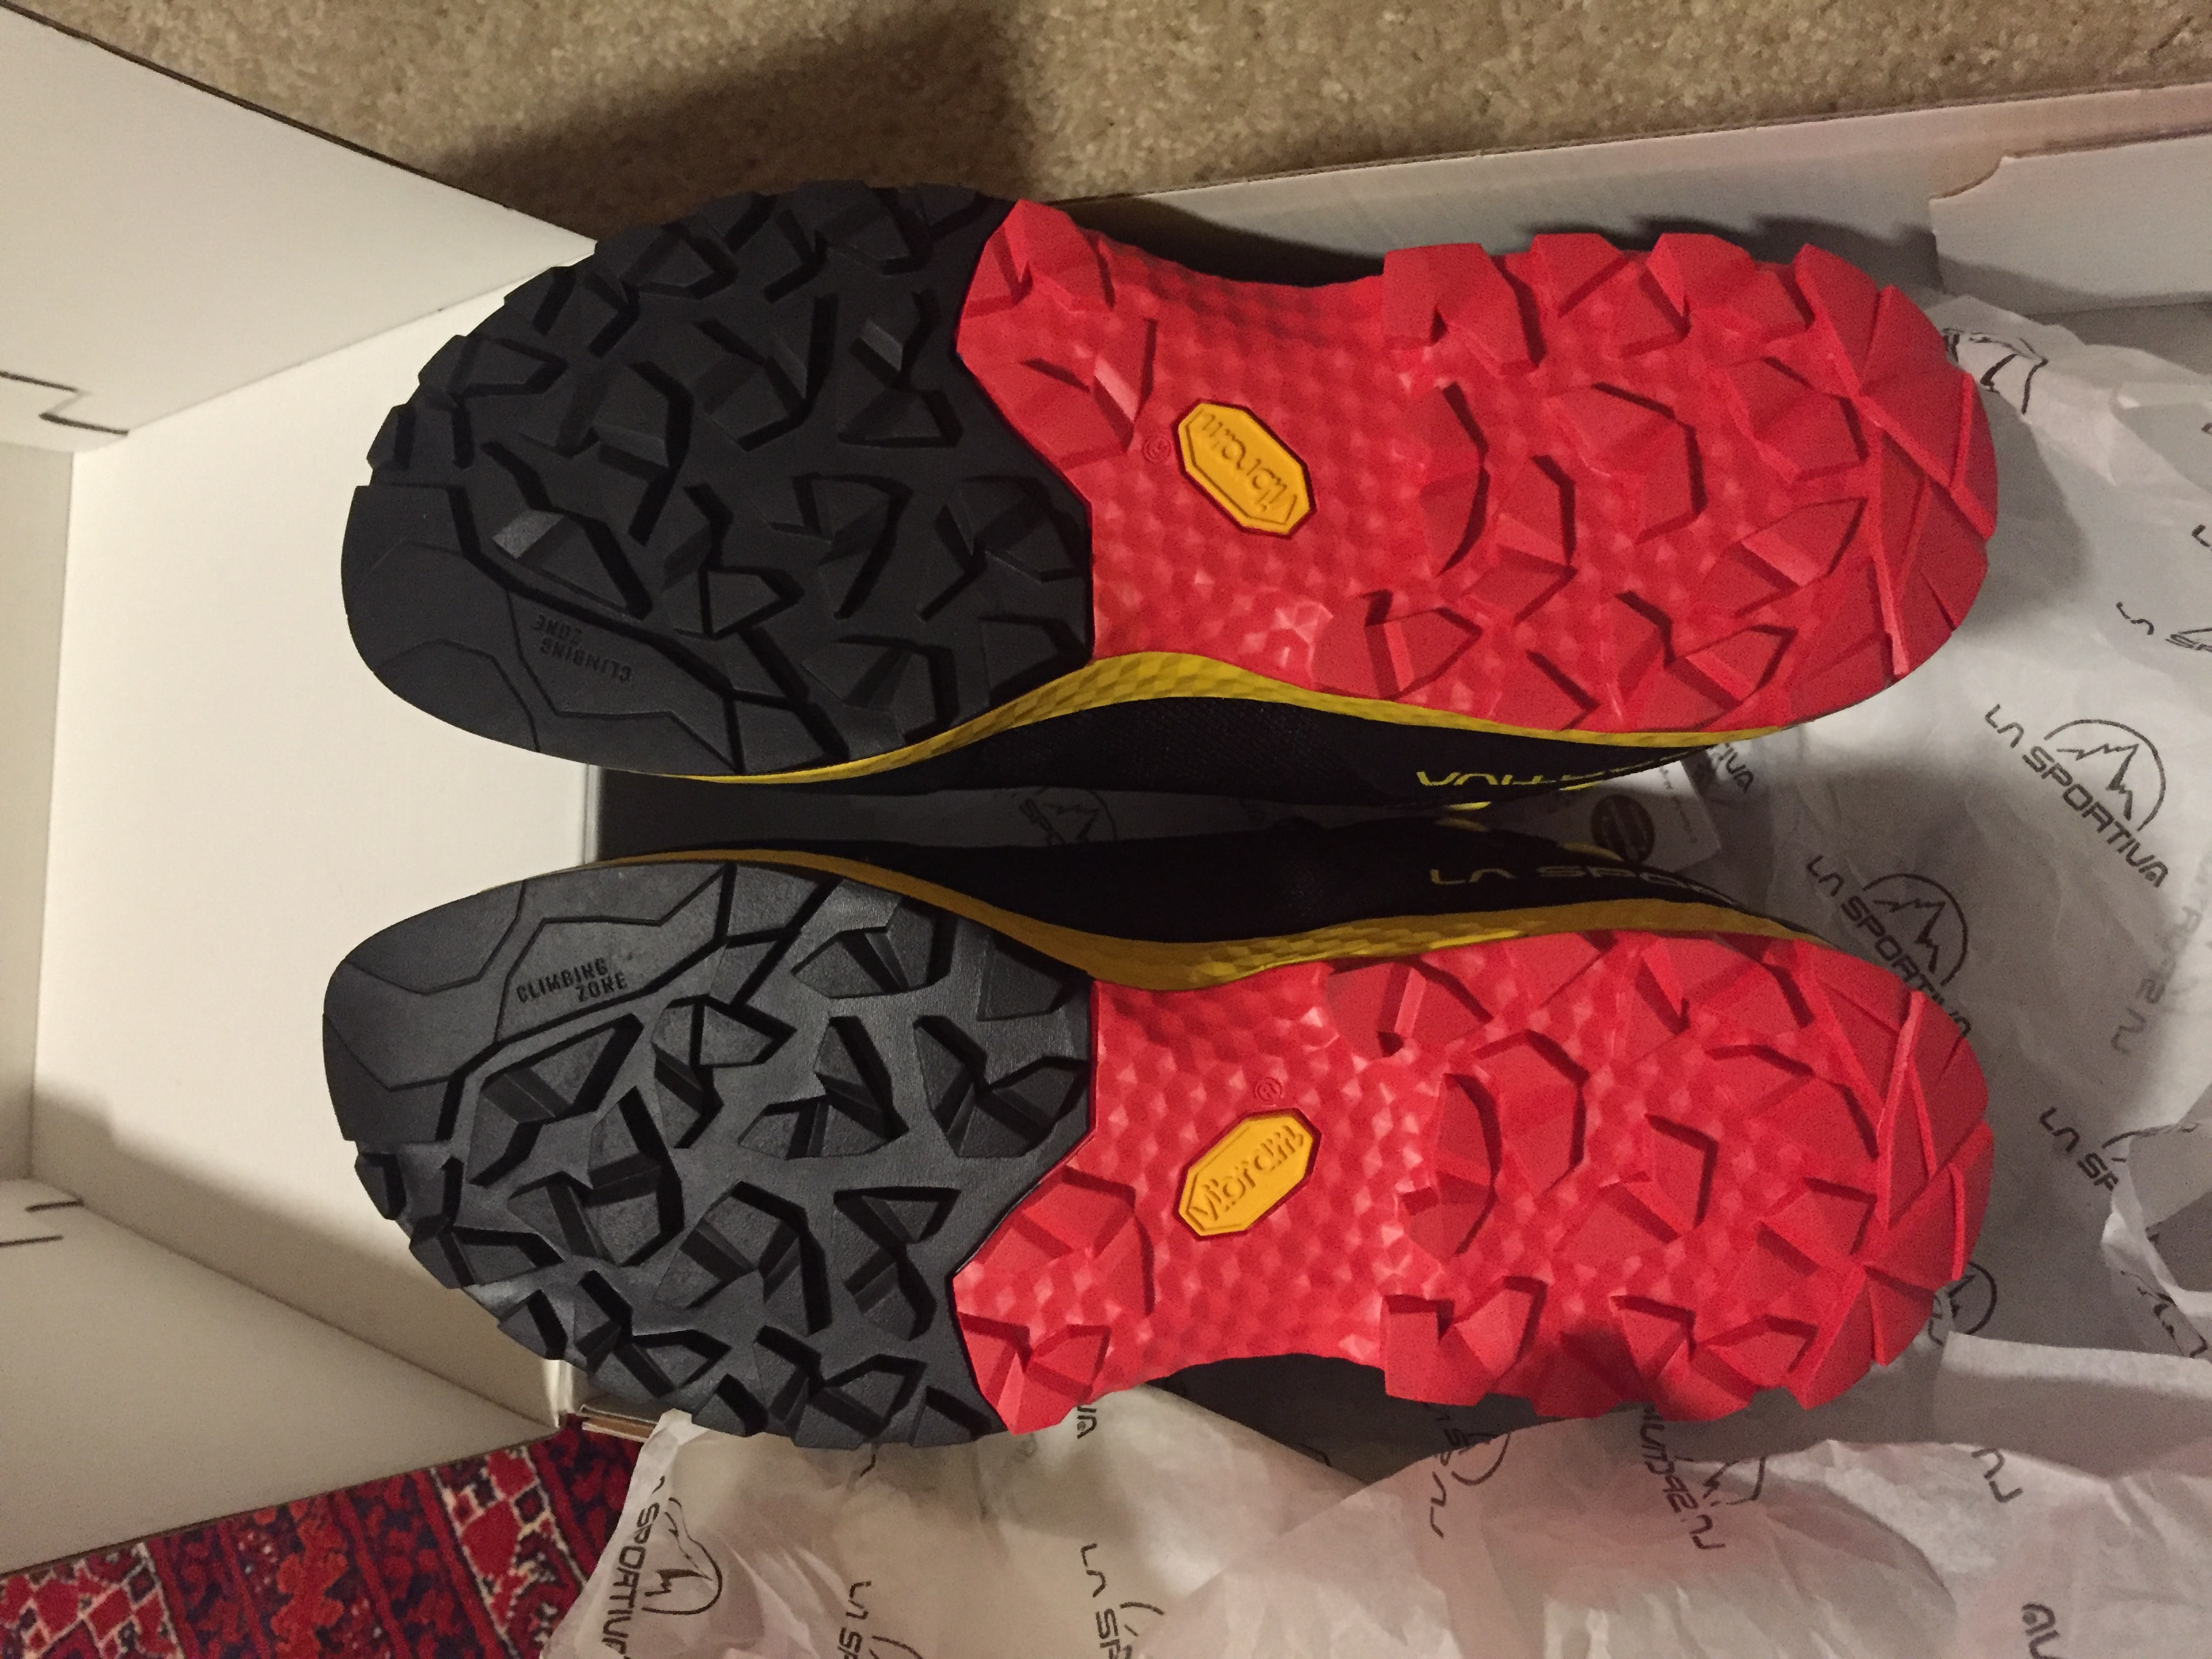 La Sportiva TX Guide - new in box/with tags